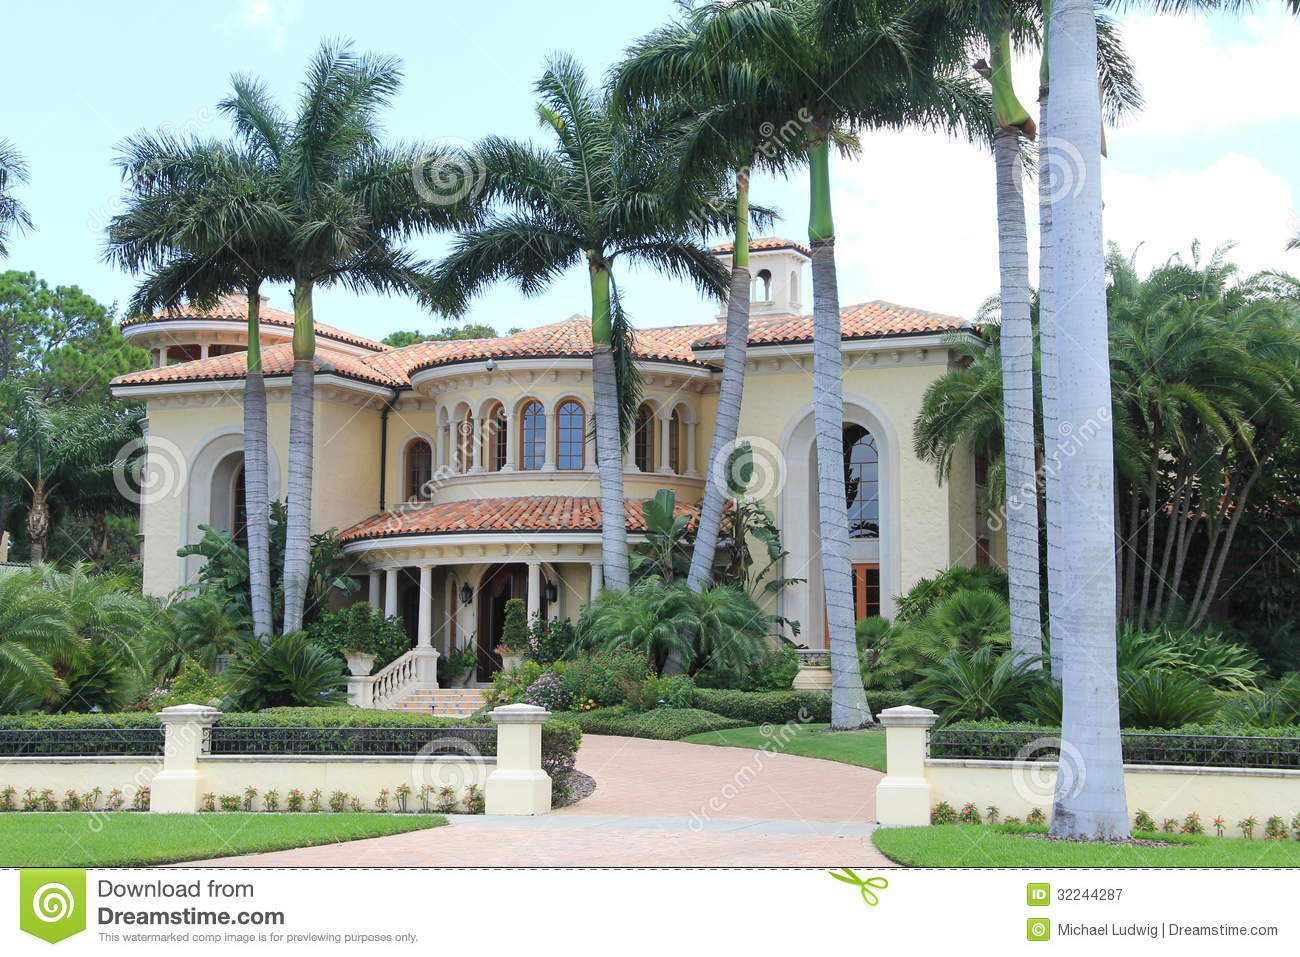 Tampa Florida mansion (from http://www.dreamstime.com/royalty-free